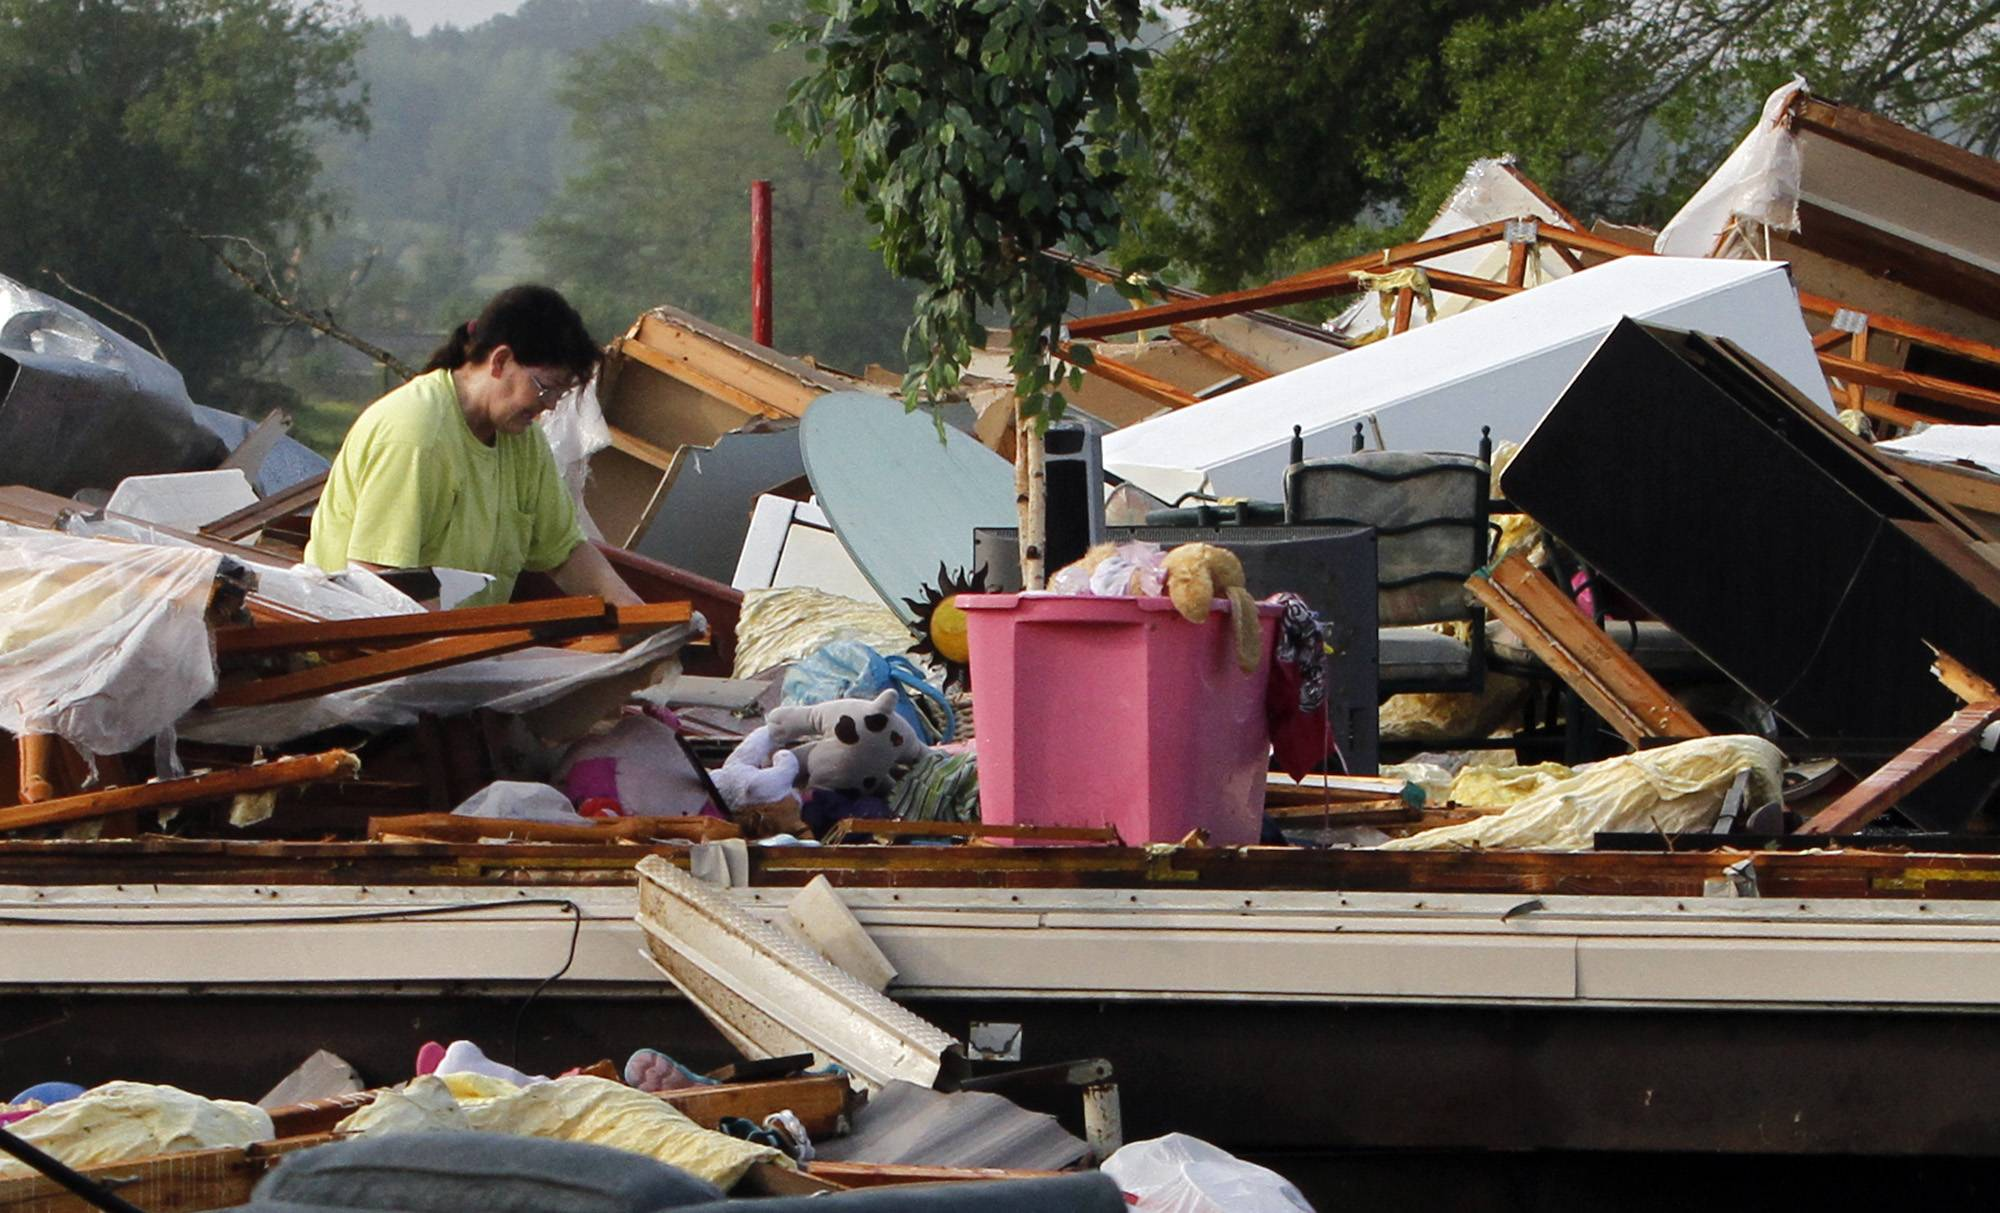 At least 35 dead as South braces for more twisters